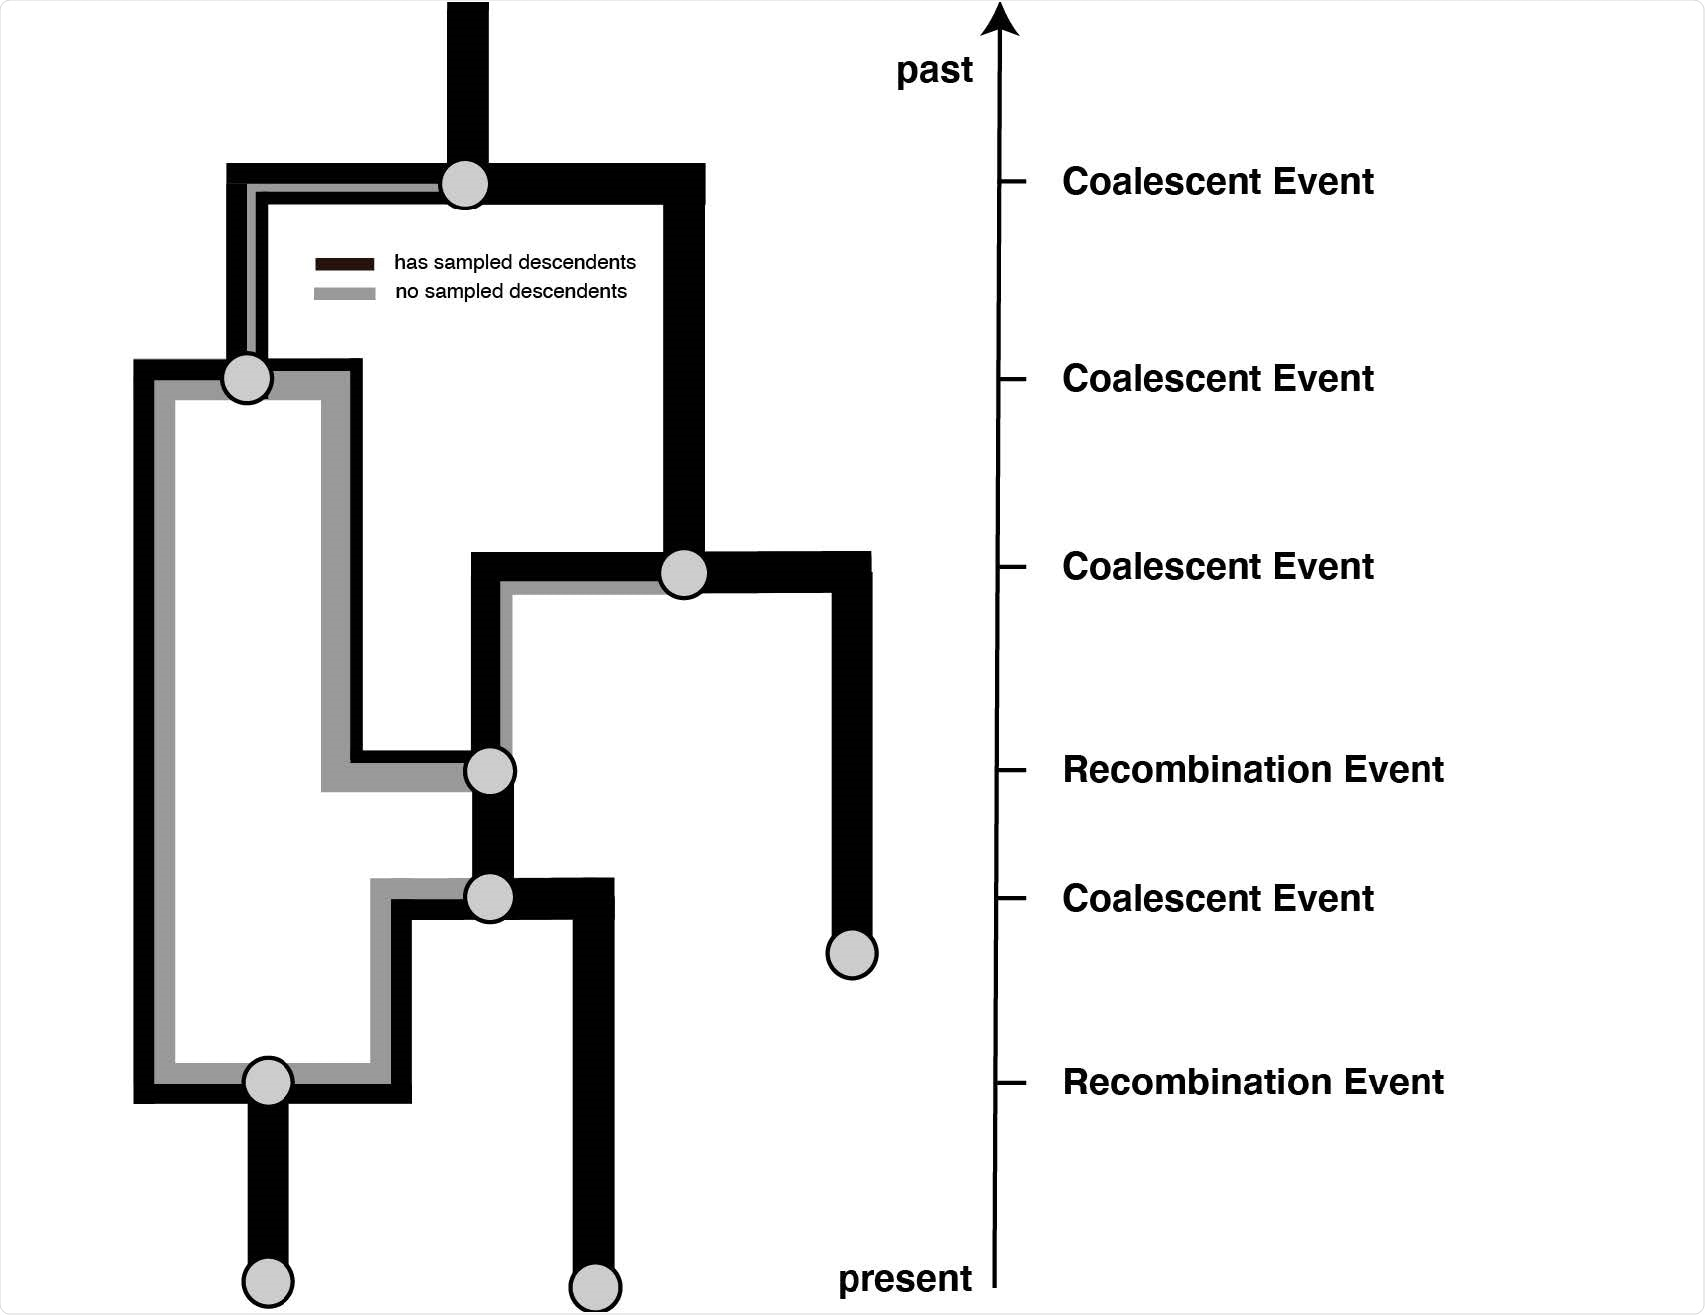 Example recombination network. Events that can occur on a recombination network as considered here. We consider events to occur from present backwards in time to the past (as is the norm when looking at coalescent processes. Lineages can be added upon sampling events, which occur at predened points in time and are conditioned on. Recombination events split the path of a lineage in two, with everything on one side of a recombination breakpoint going in one and everything on the other side of a breakpoint going in the other direction.